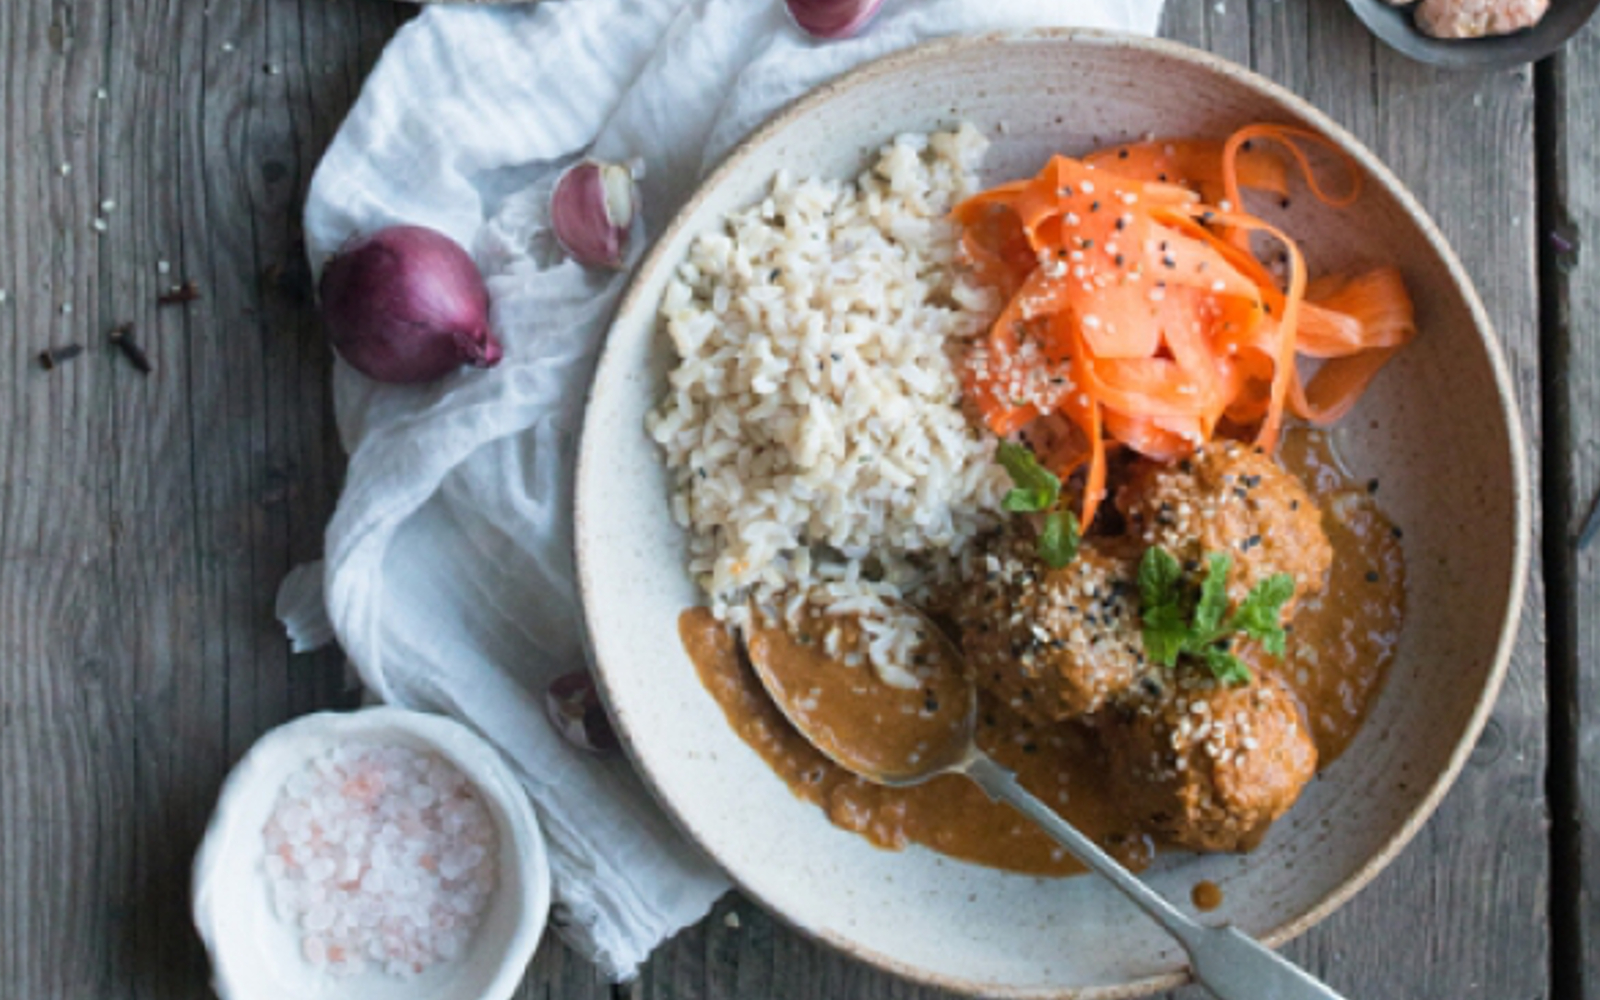 Vegan Meatballs and Masala With Quick Pickled Carrots